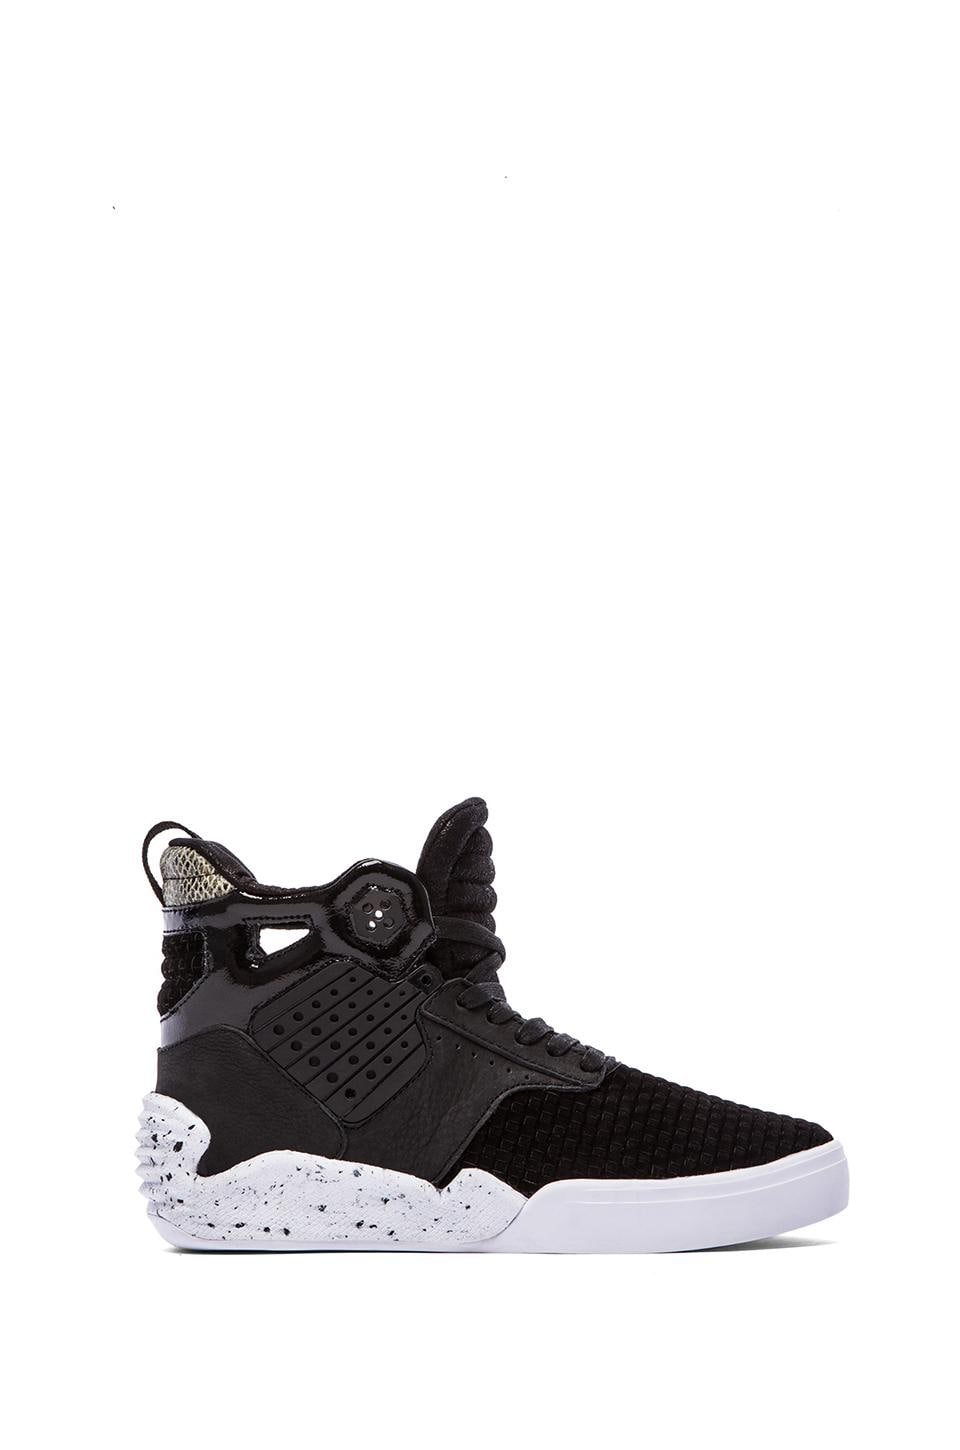 Supra Skytop IV in Black & White